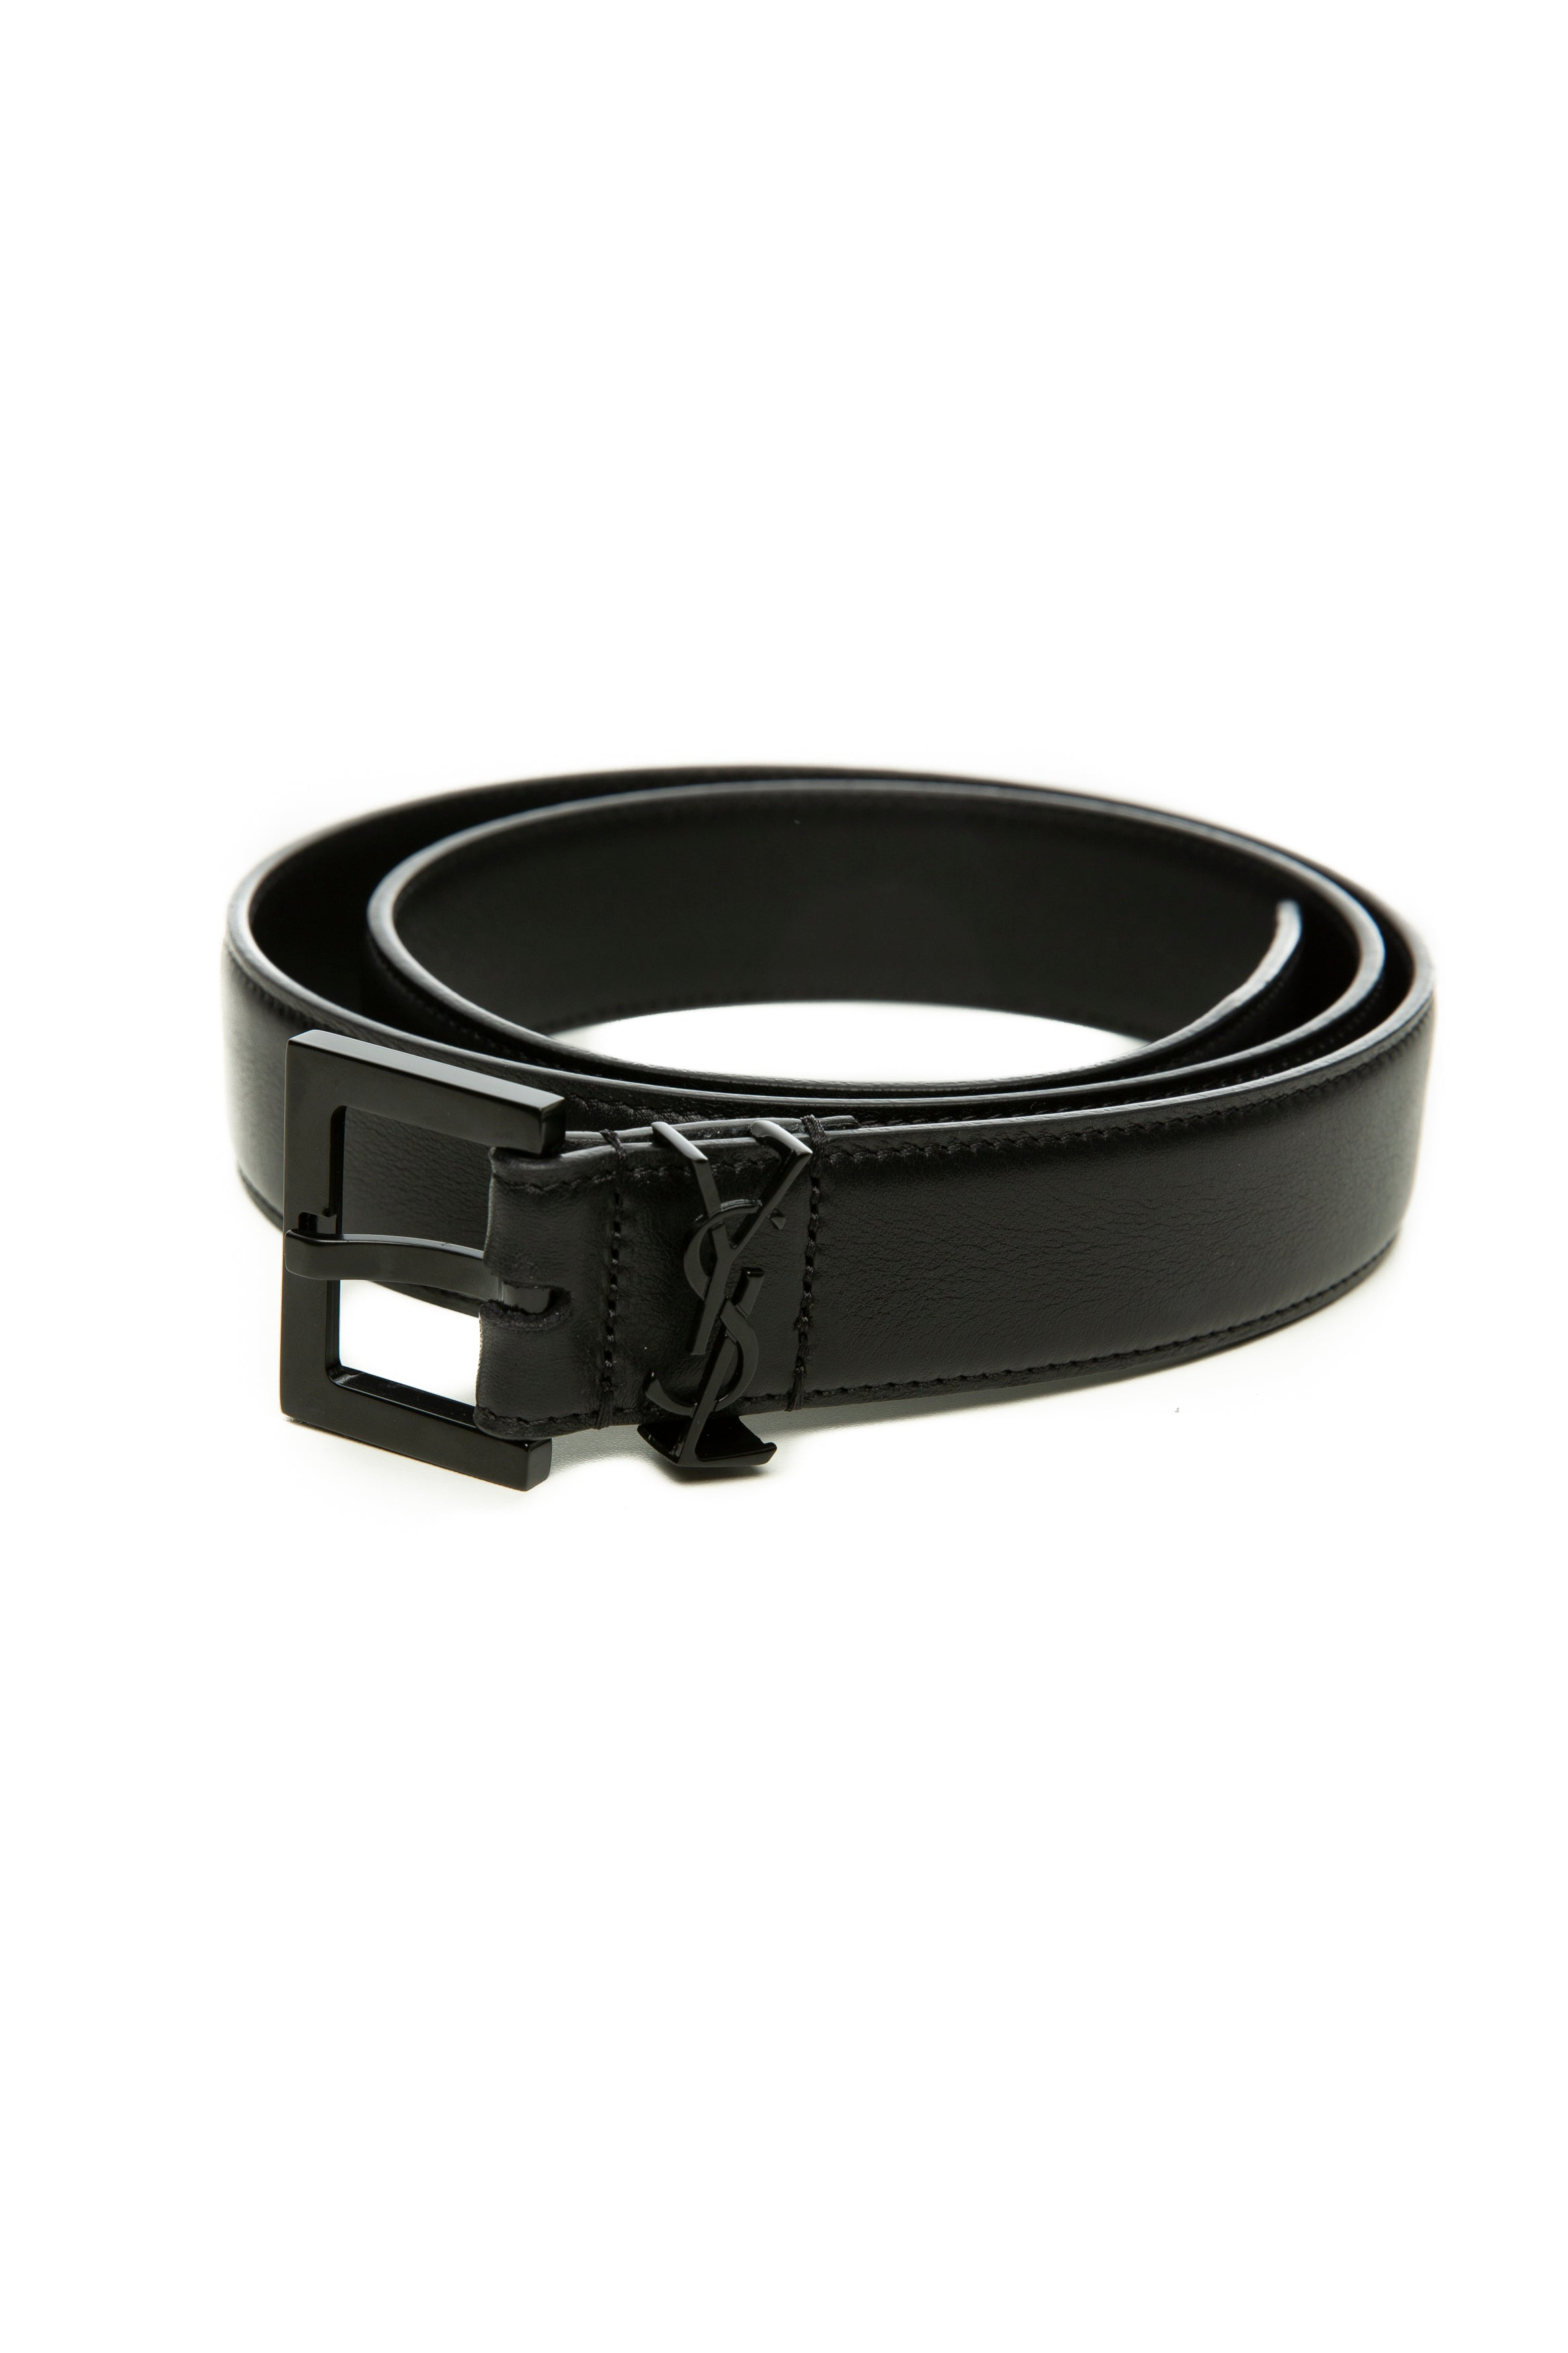 MONOGRAM BELT BLACK